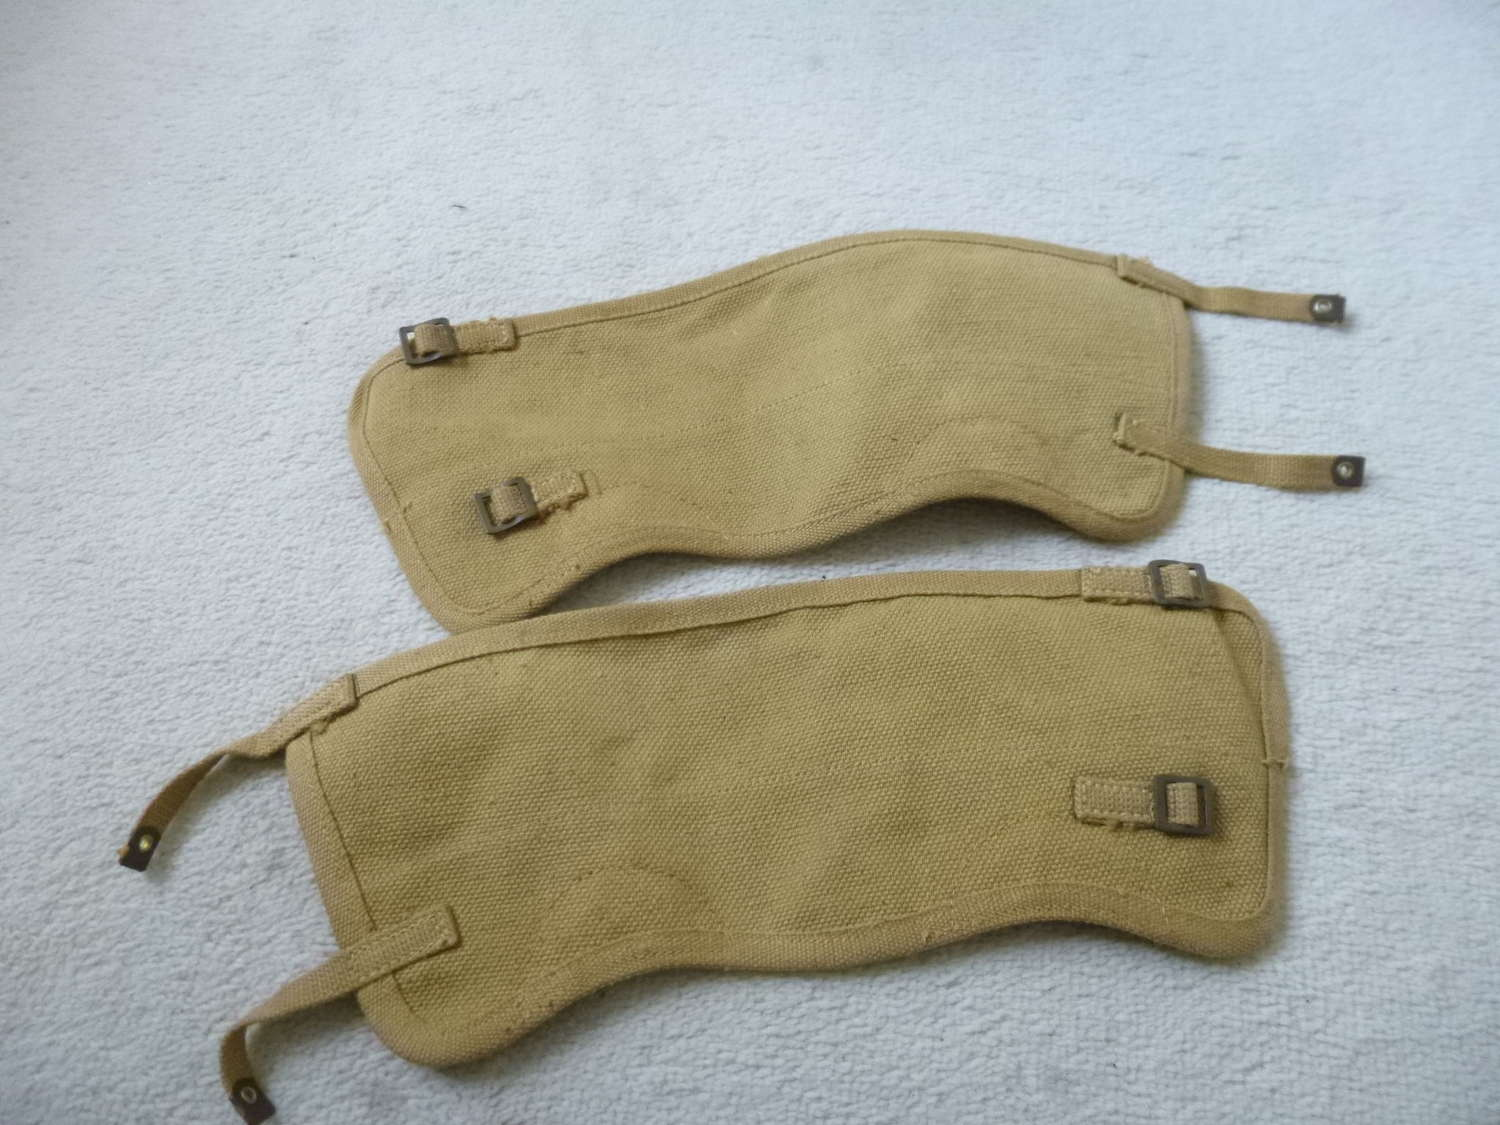 A pair of canadian gaiters